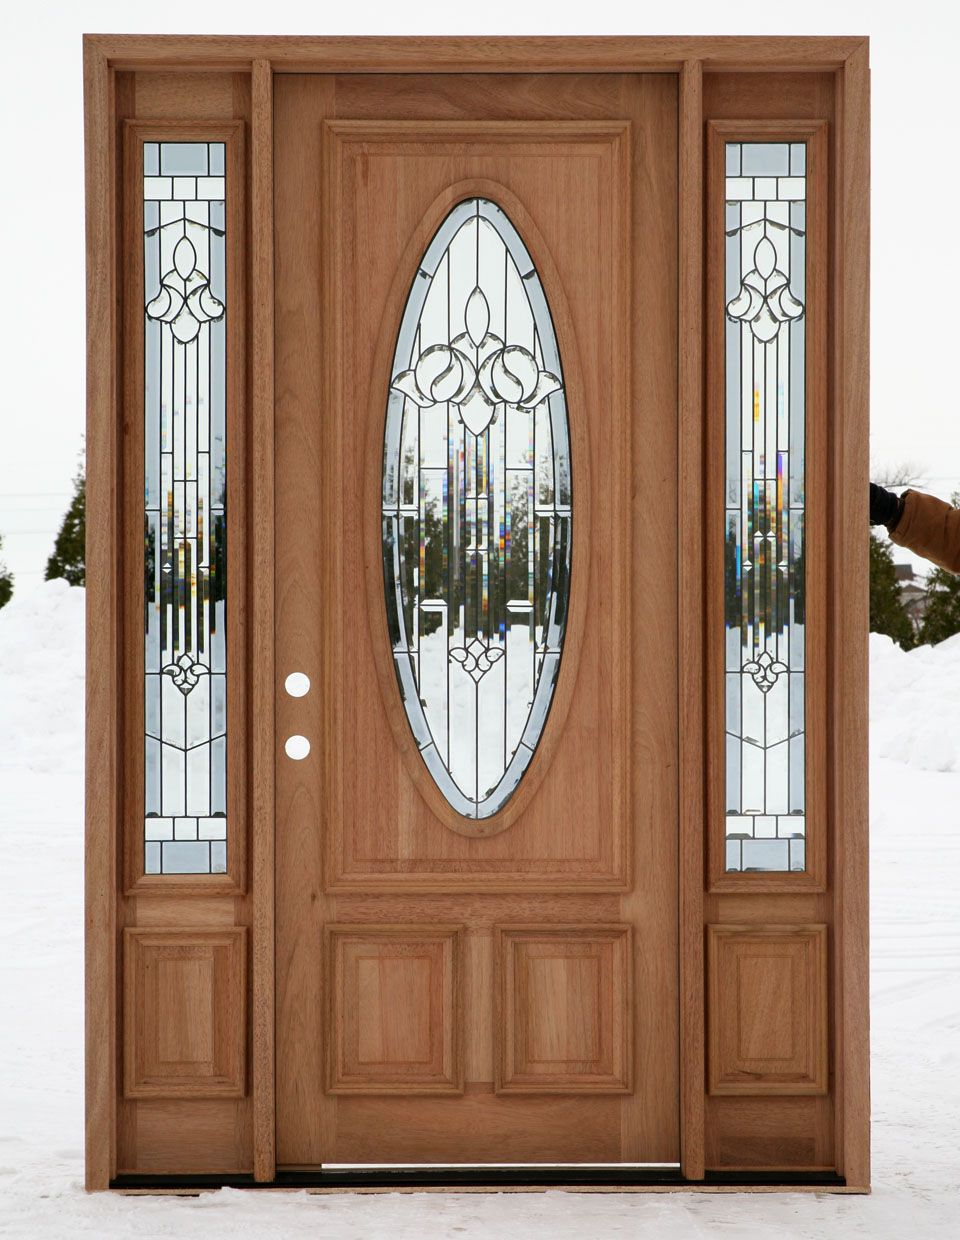 Exterior Doors front entrance doors | exterior doors, entry doors, wood doors